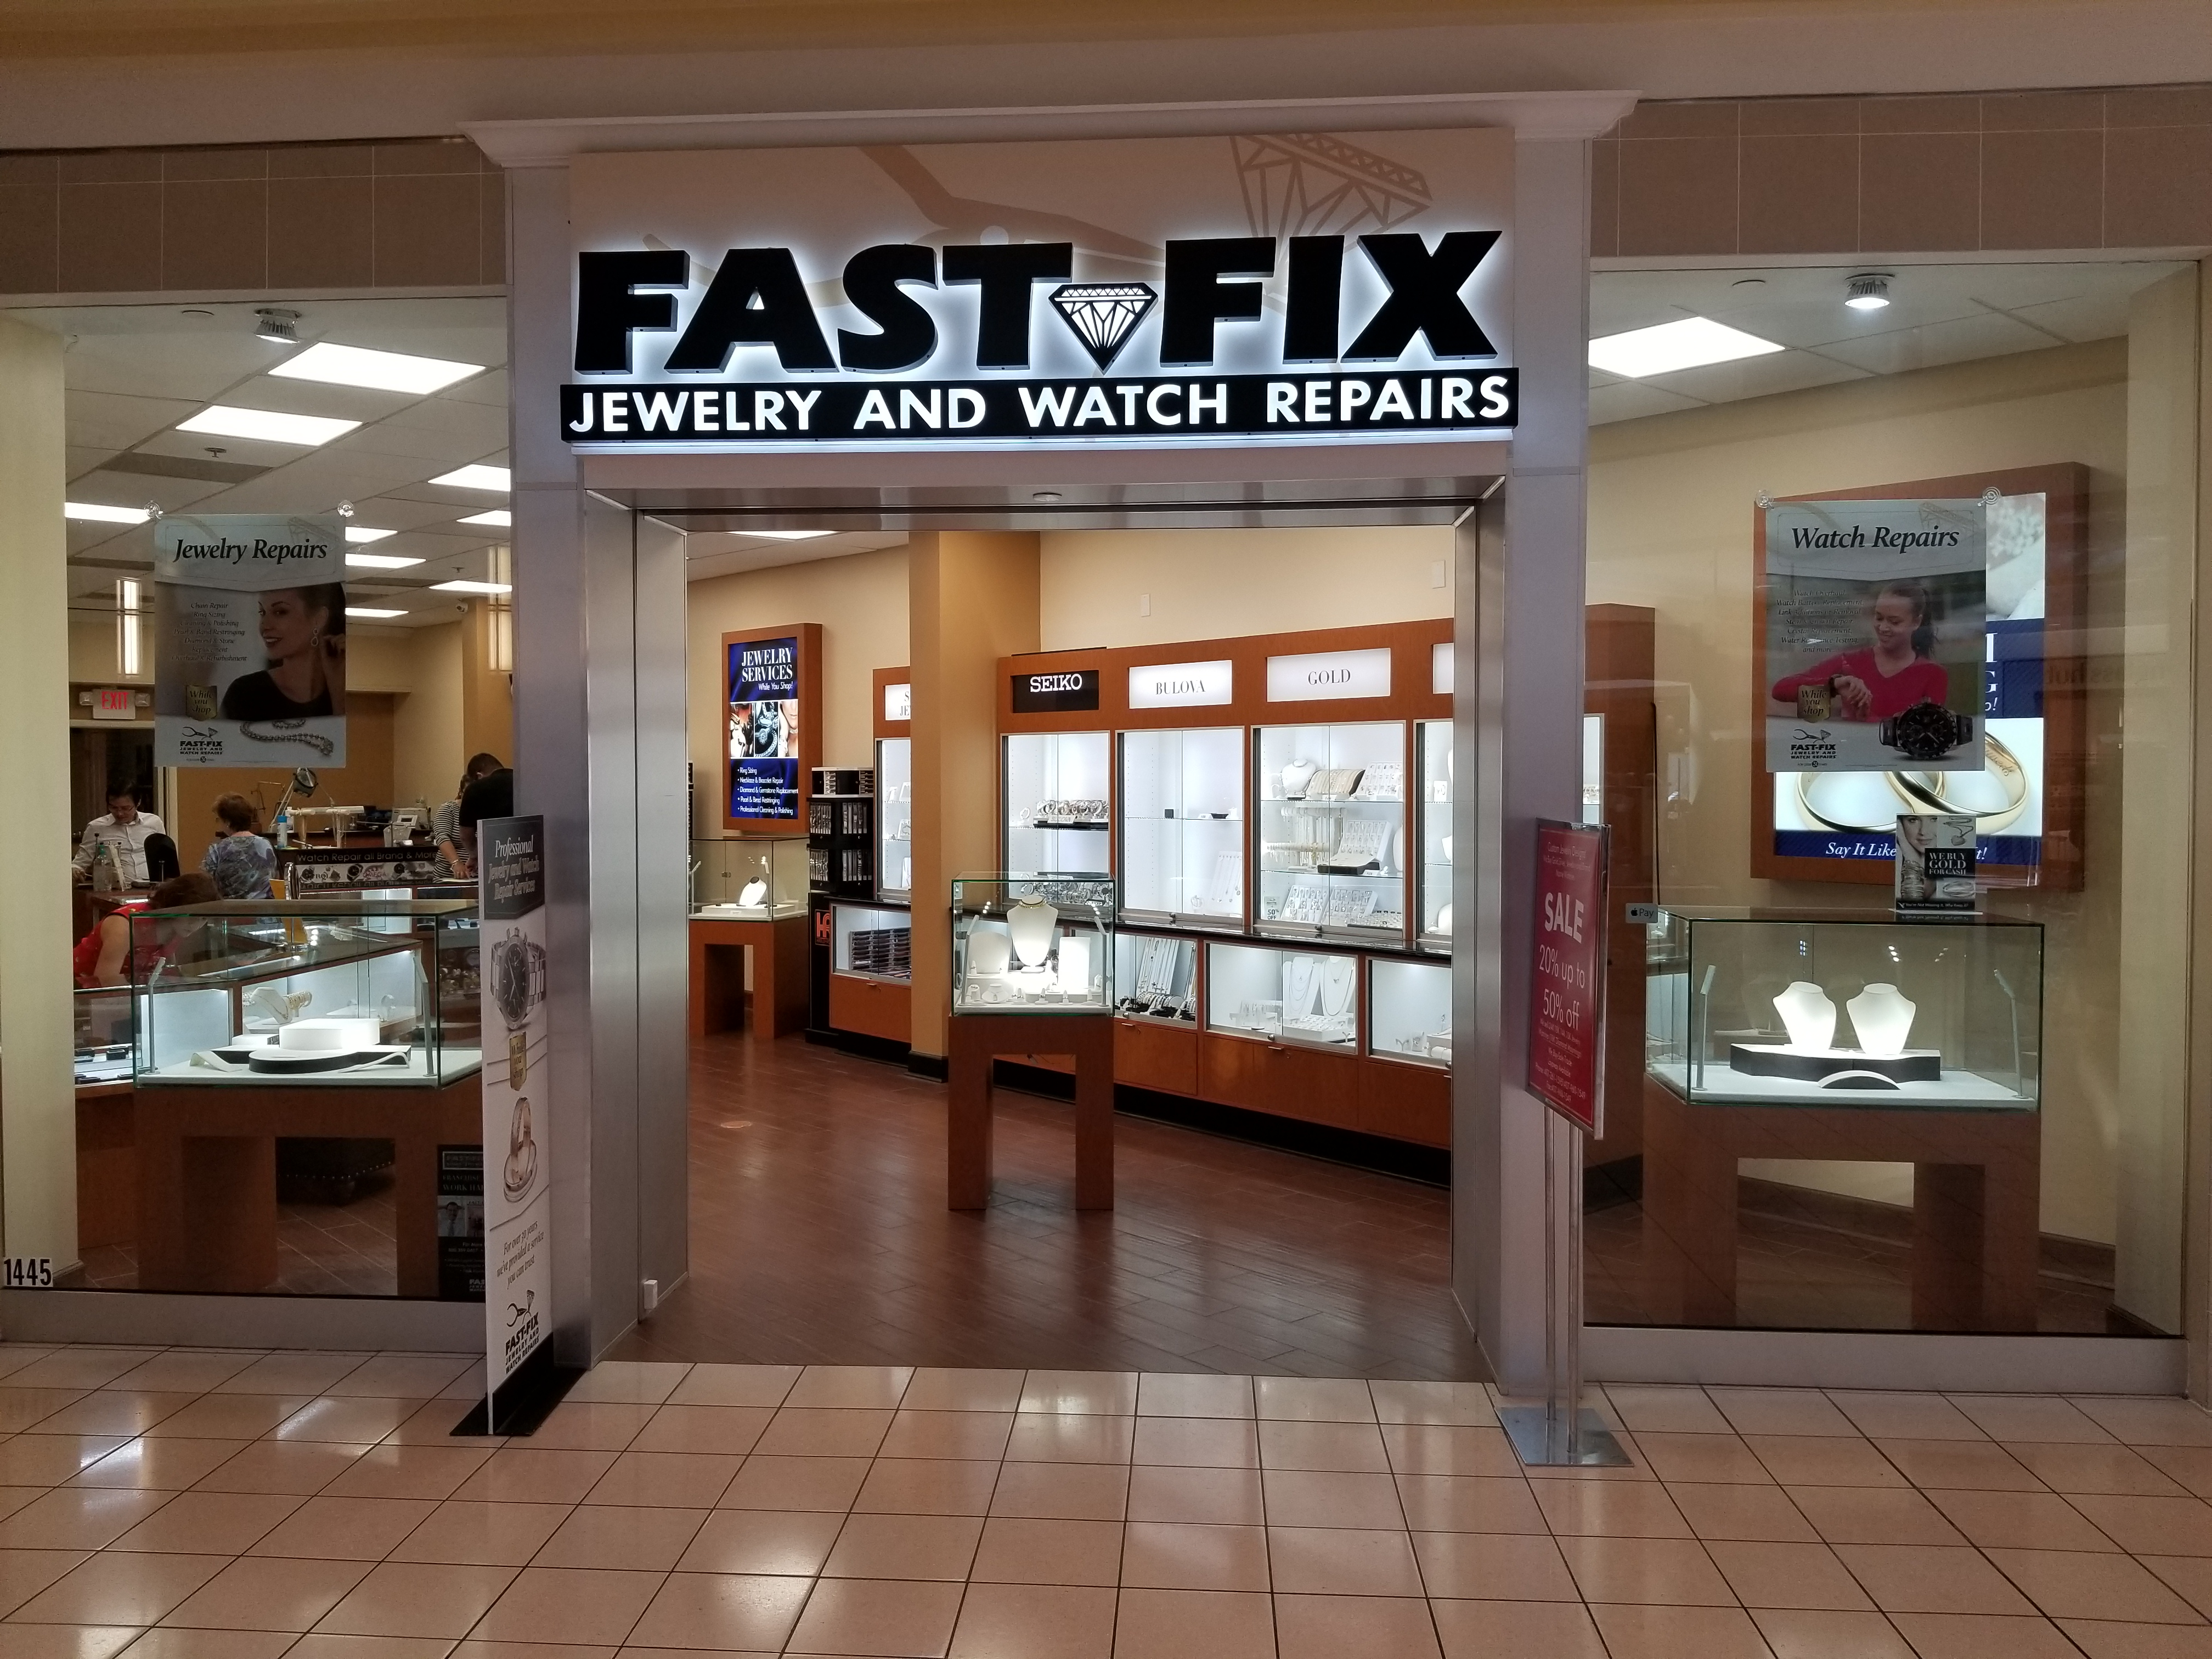 Store front of a Fast-Fix franchise in a mall